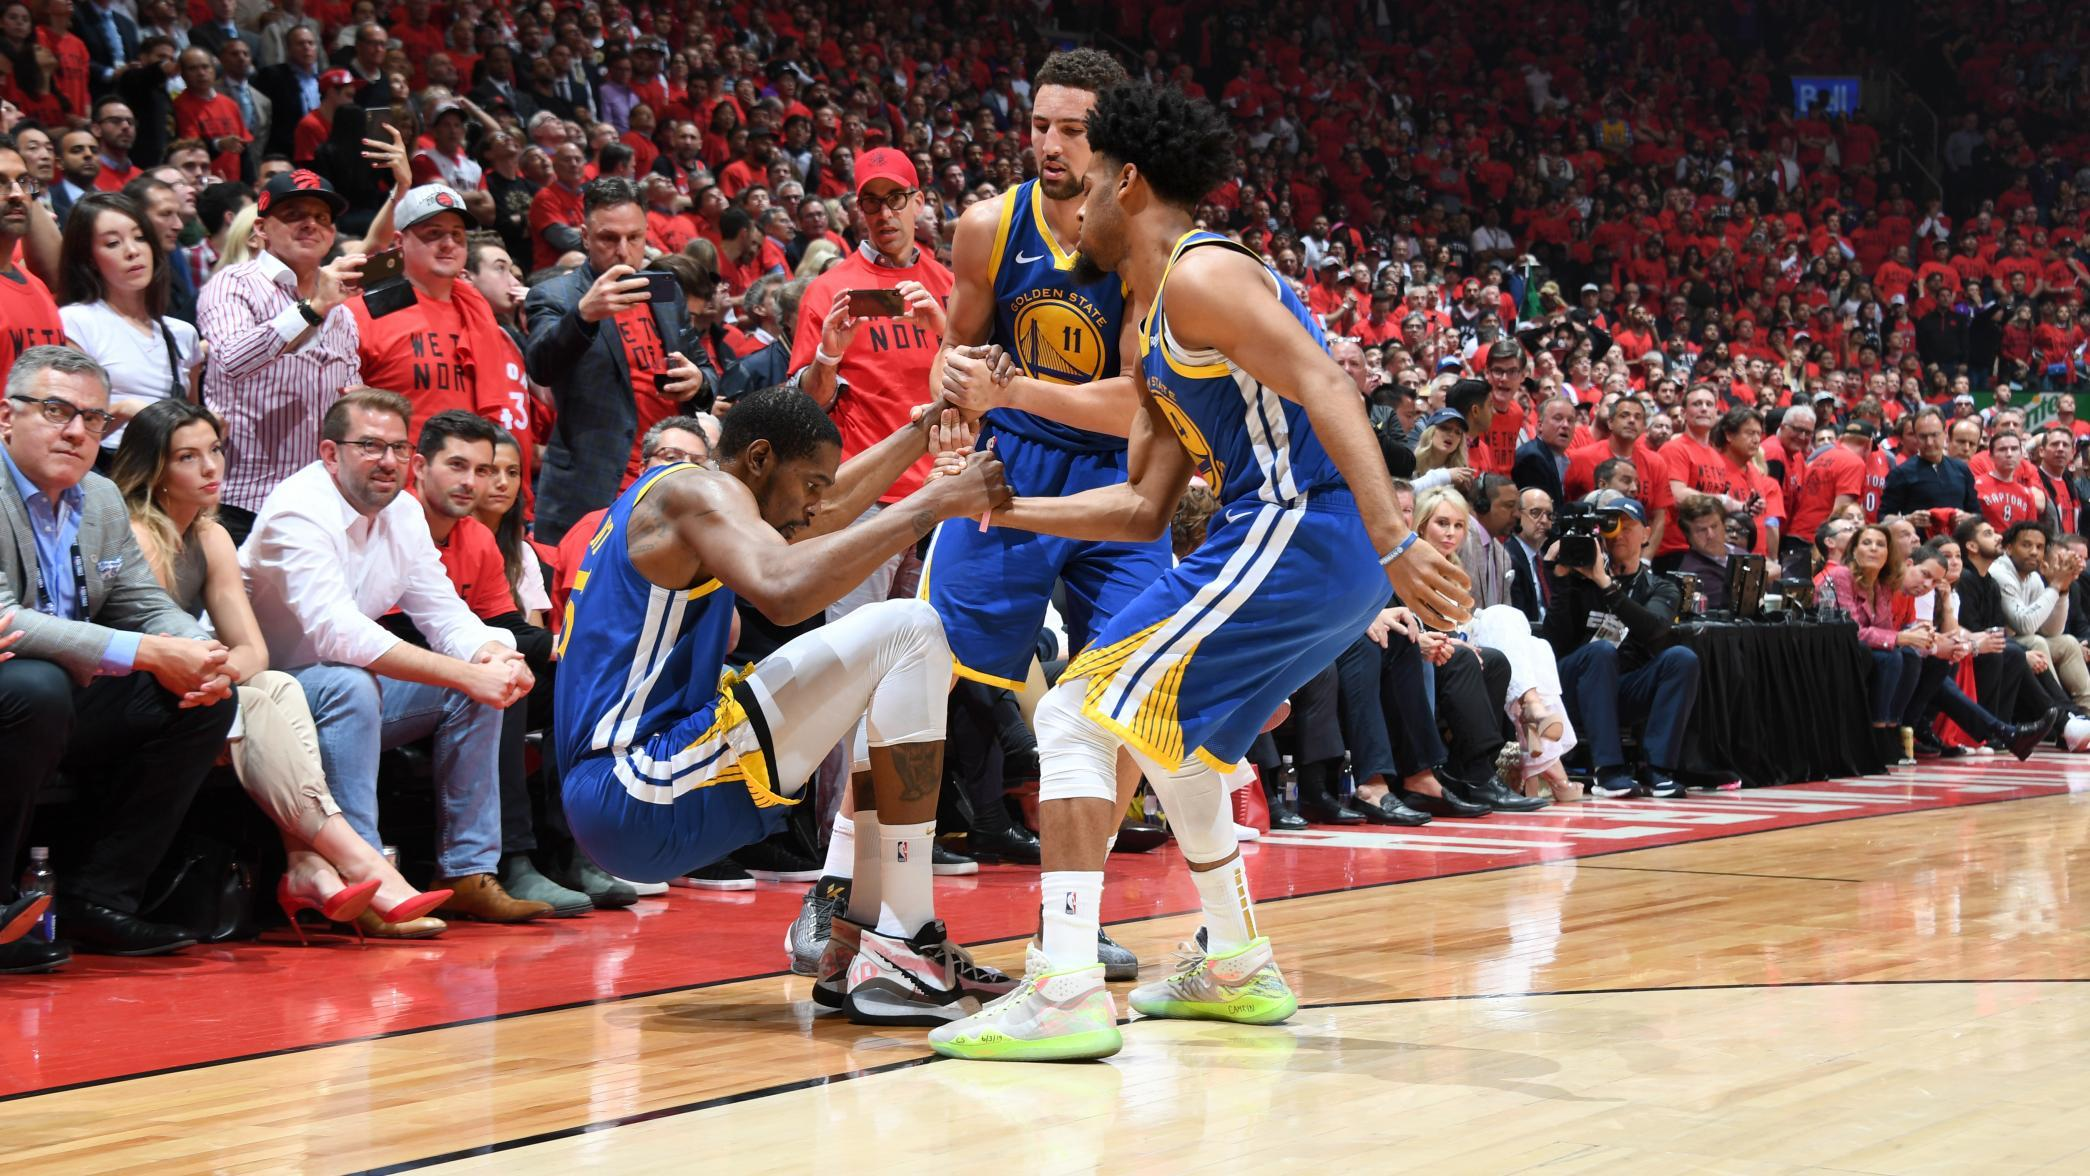 GettyImages-1148990220 - The Warriors are one game away from elimination, and their dynasty is one step c - Basketball | NBA-PBA